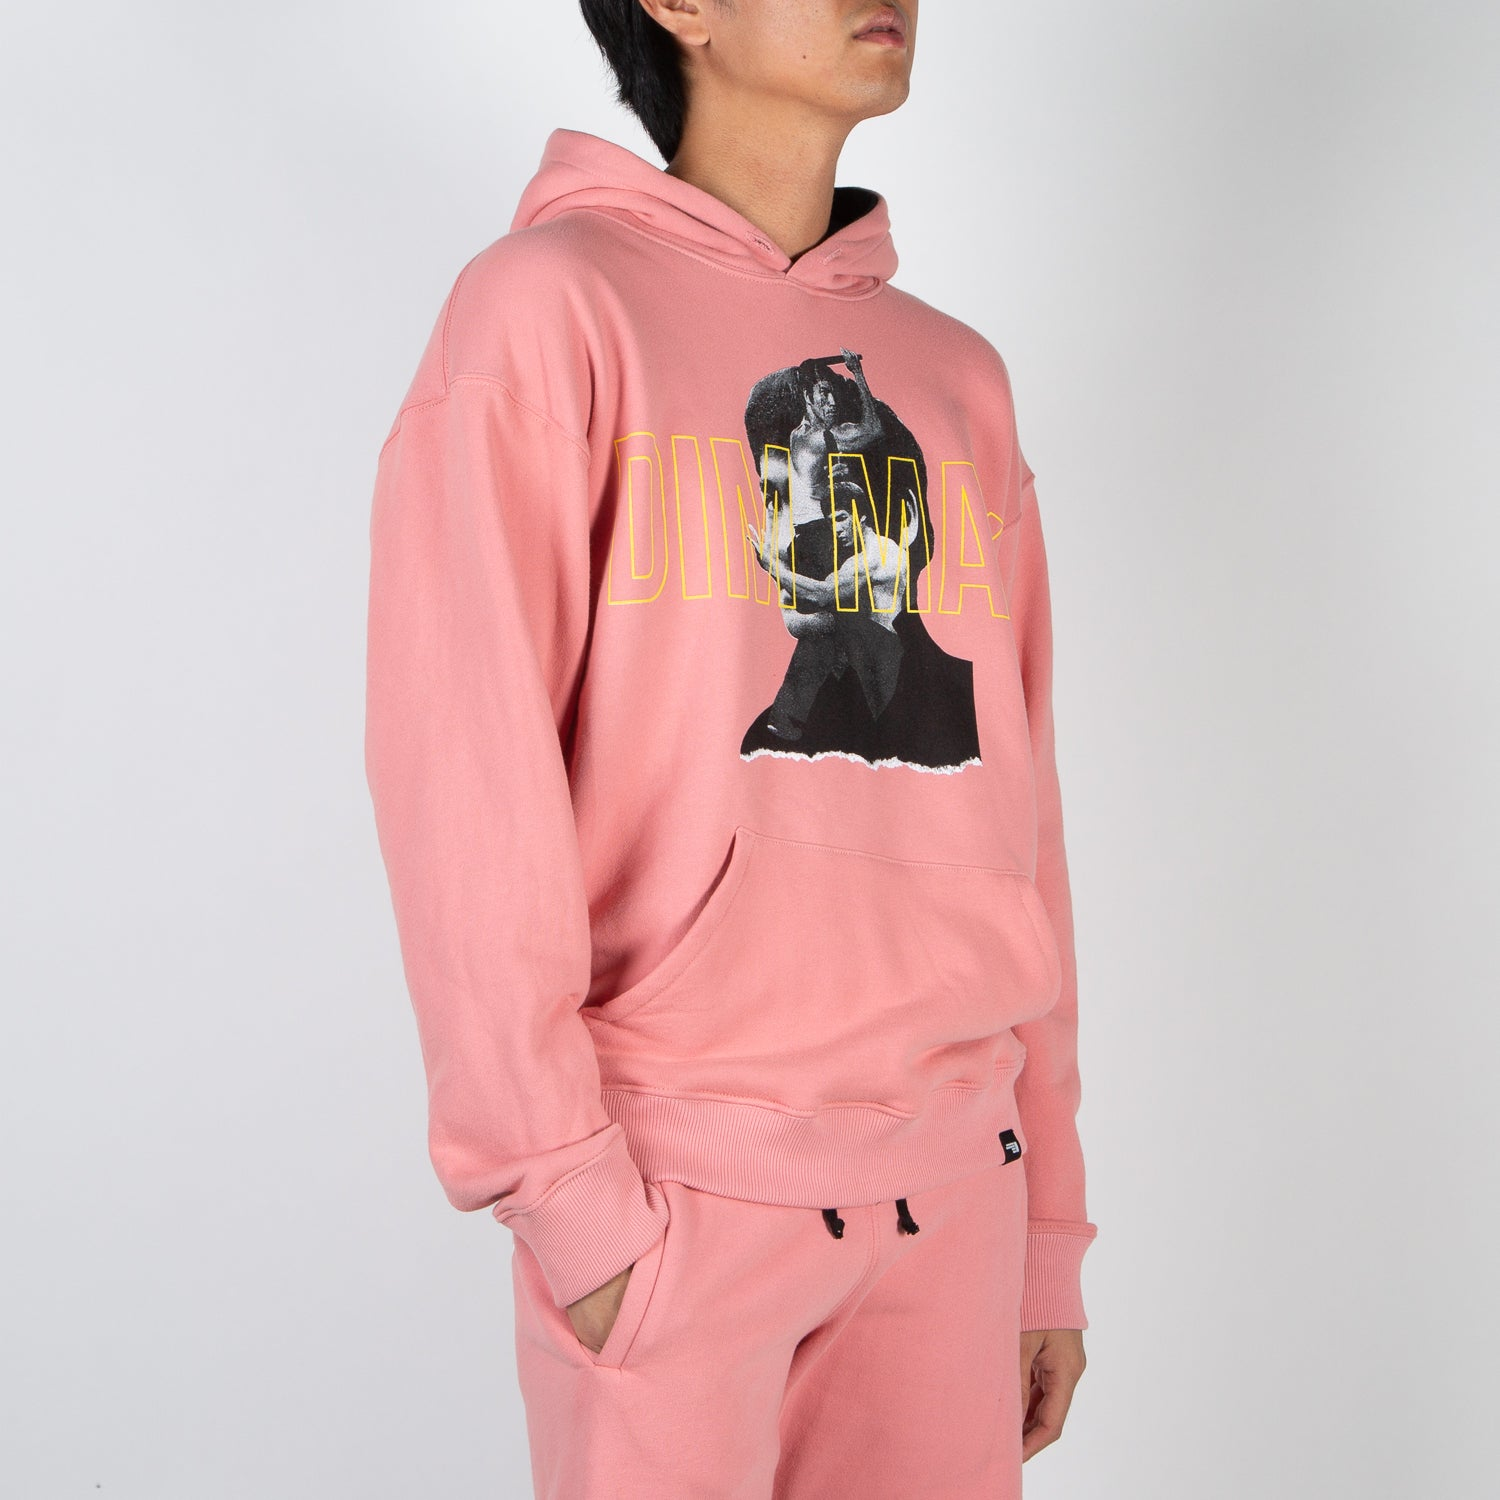 Printed Bruce Lee on pink pullover hoodie by Dim Mak at Secret Location